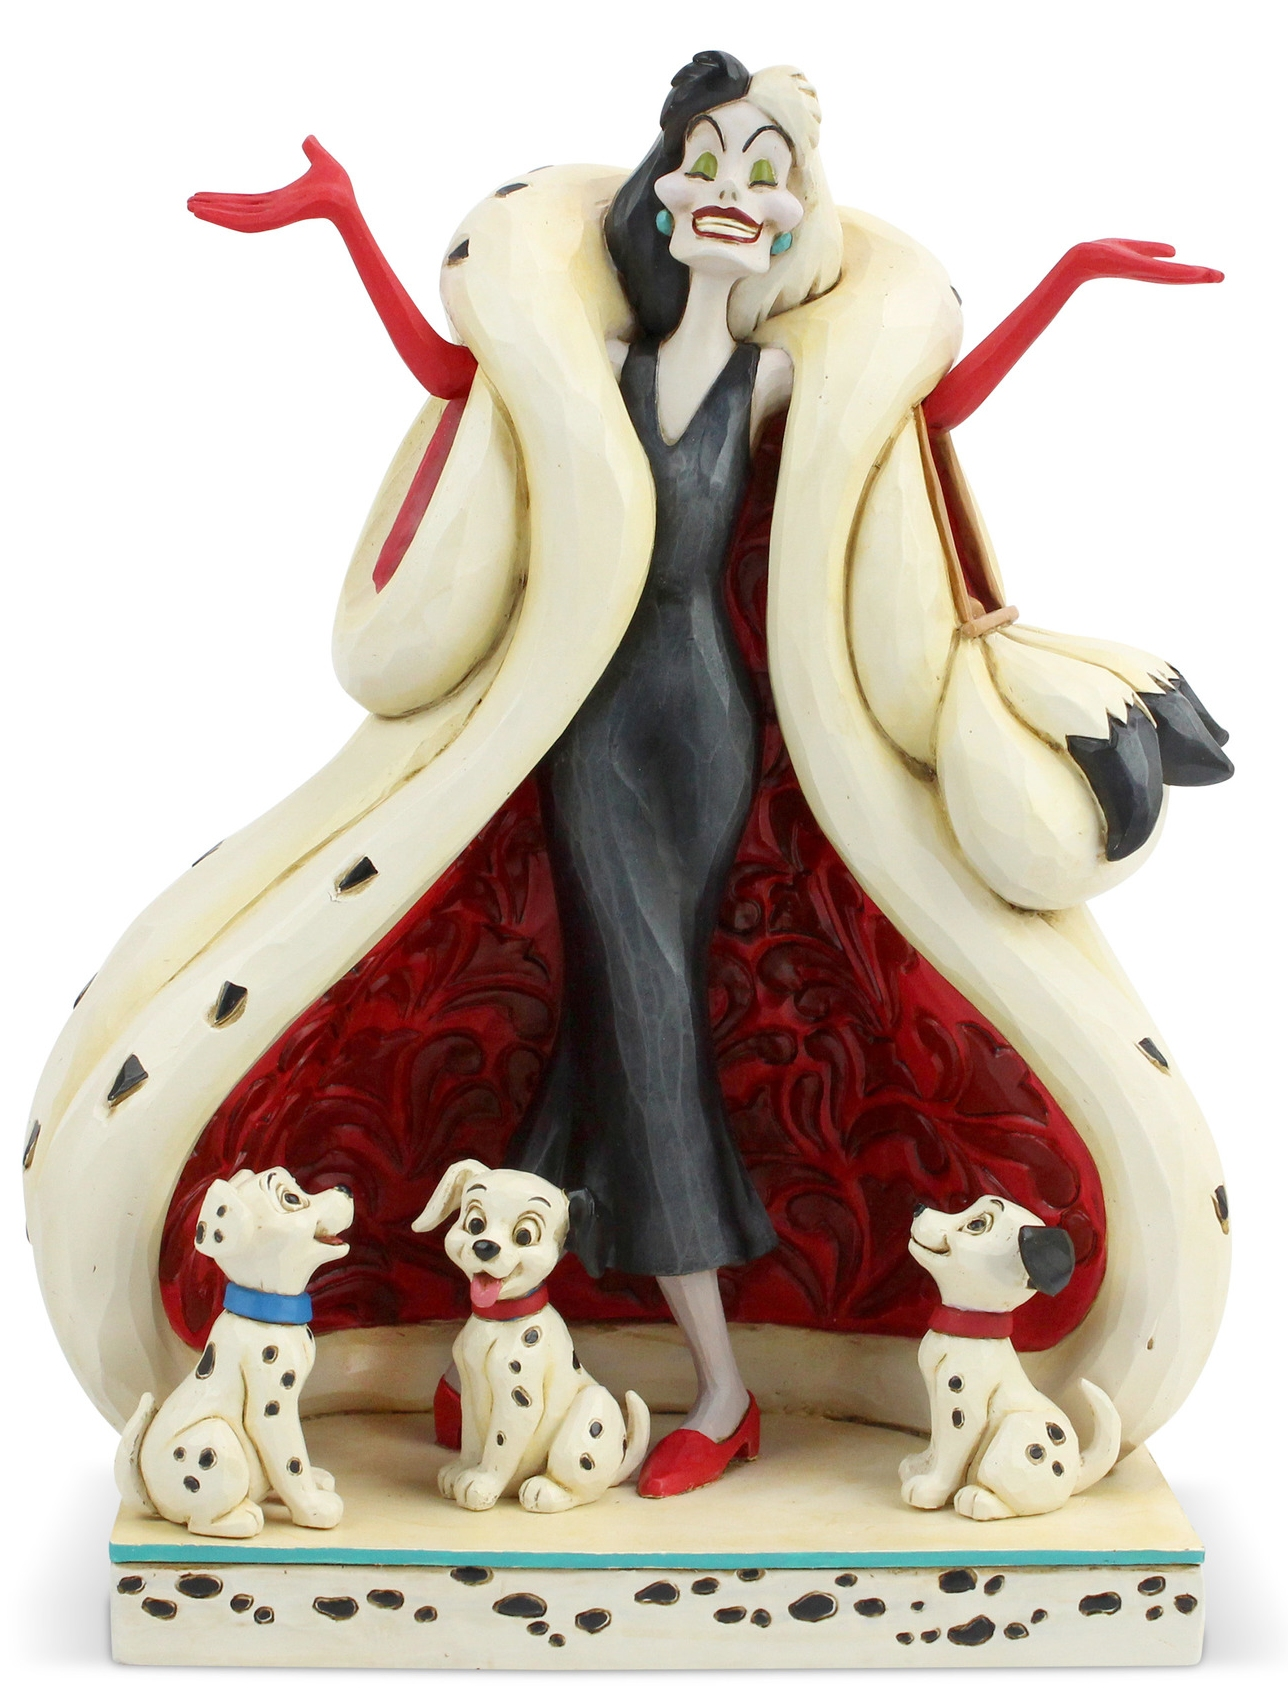 Disney Traditions by Jim Shore 6005970N Cruella with Puppies Figurine